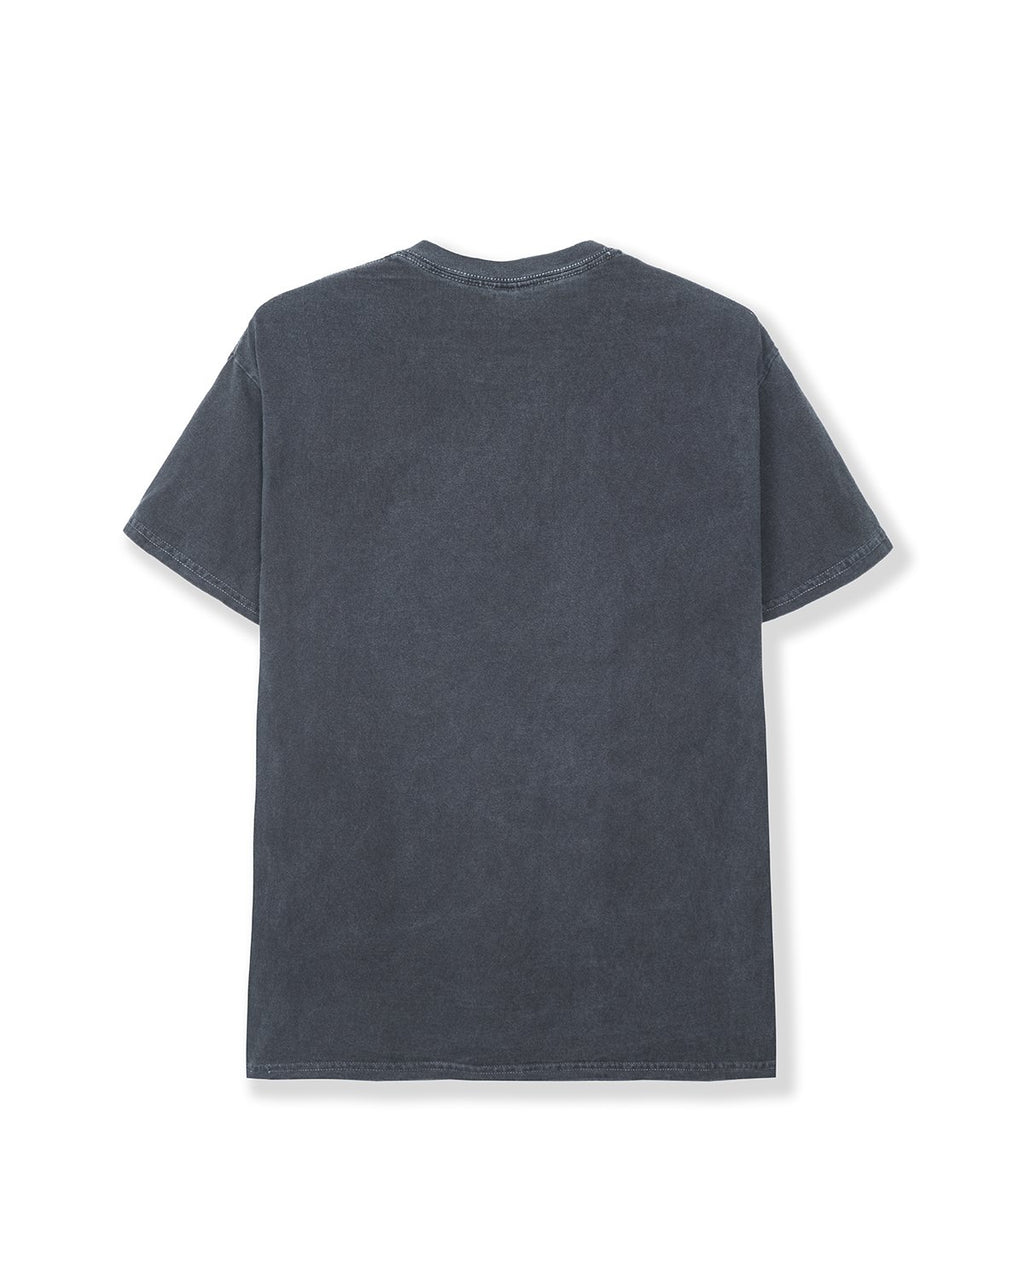 MEDITATION T-SHIRT - WASHED BLACK